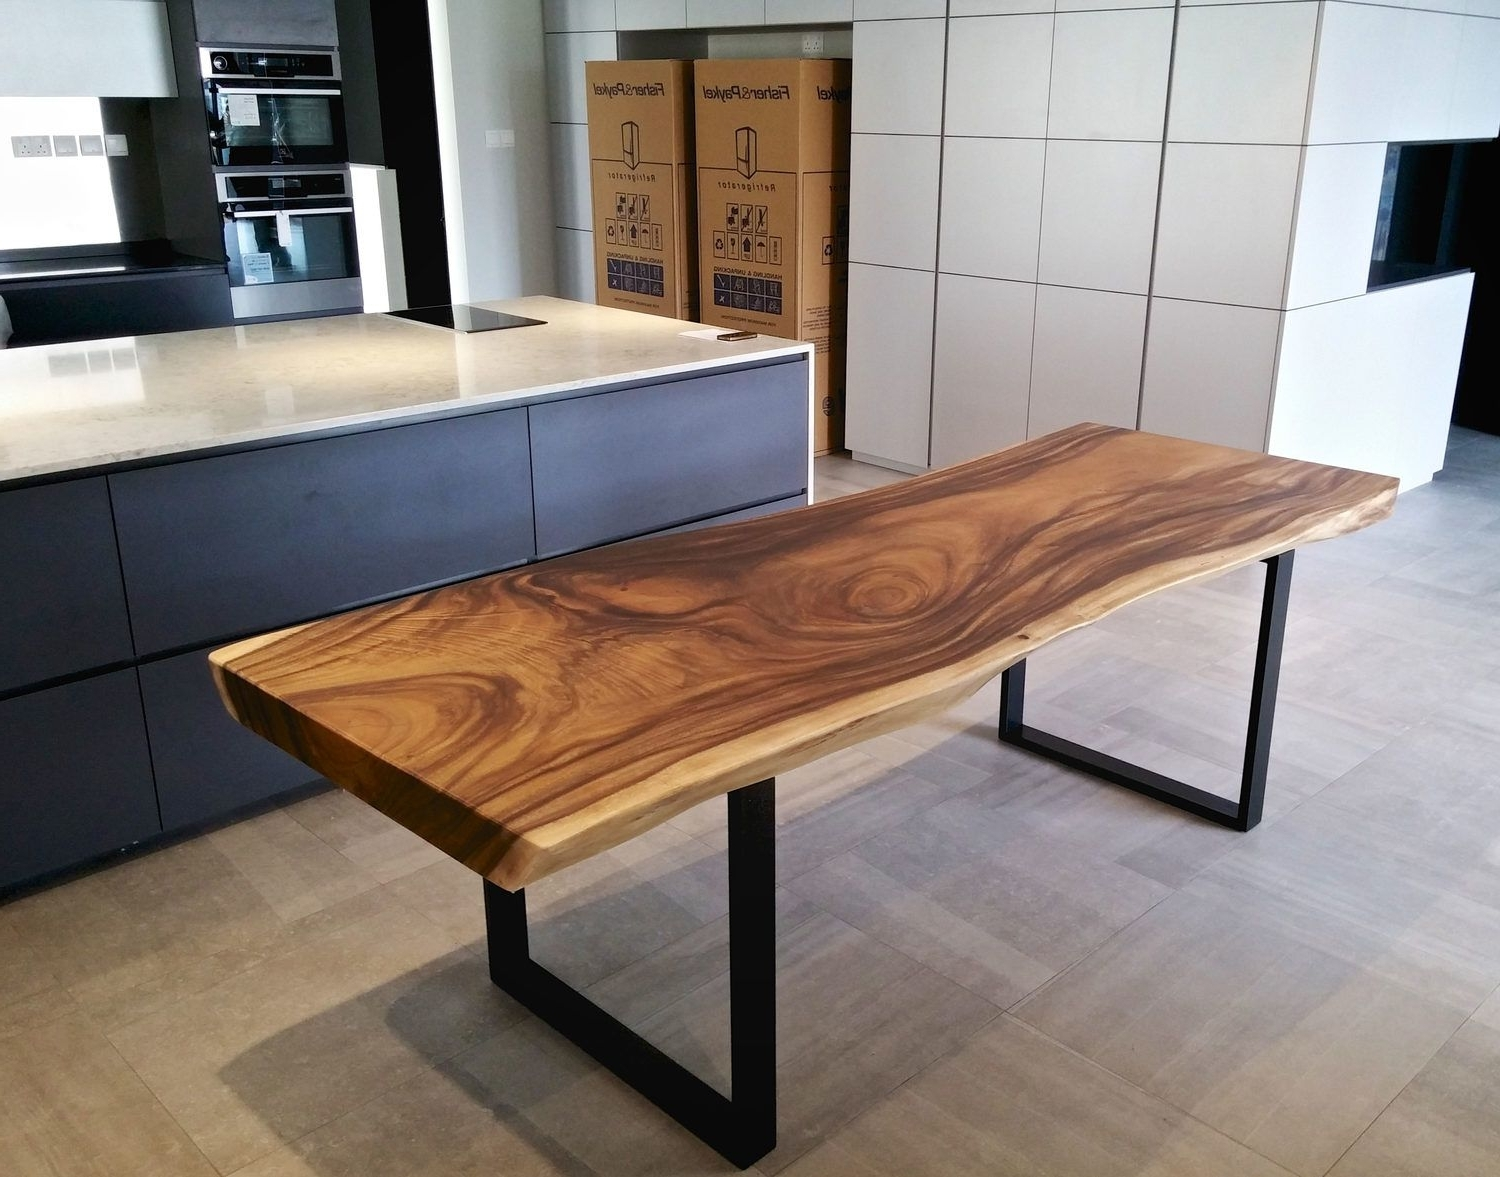 Solid Oak Dining Tables Regarding 2018 Solid Wood Dining Table With Black Metal Legs (View 16 of 25)